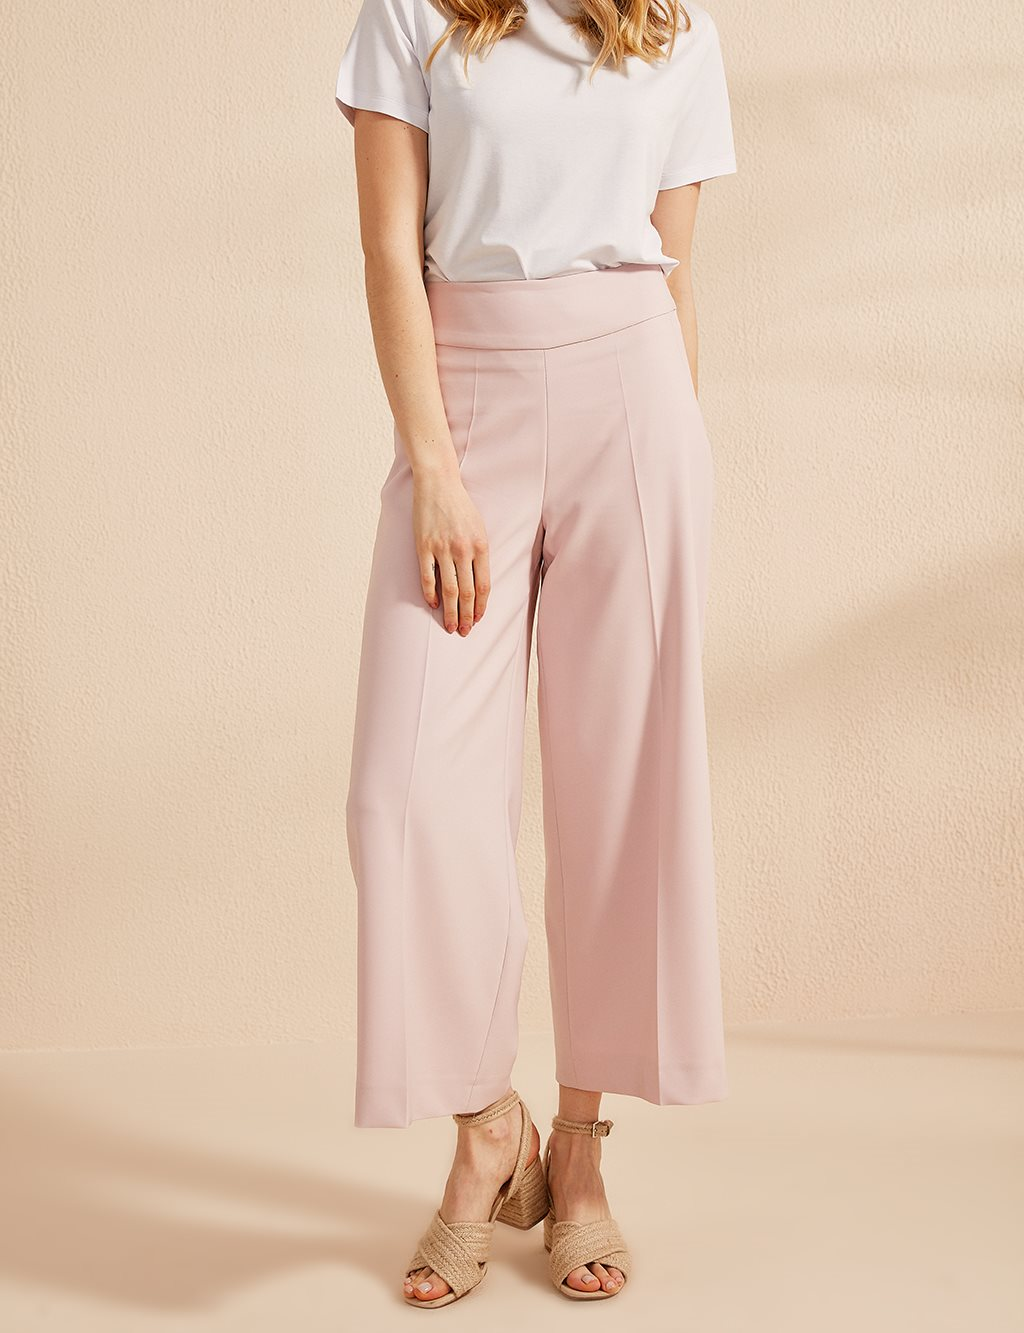 KYR High Waist Oversize Pants B20 79001 Powder